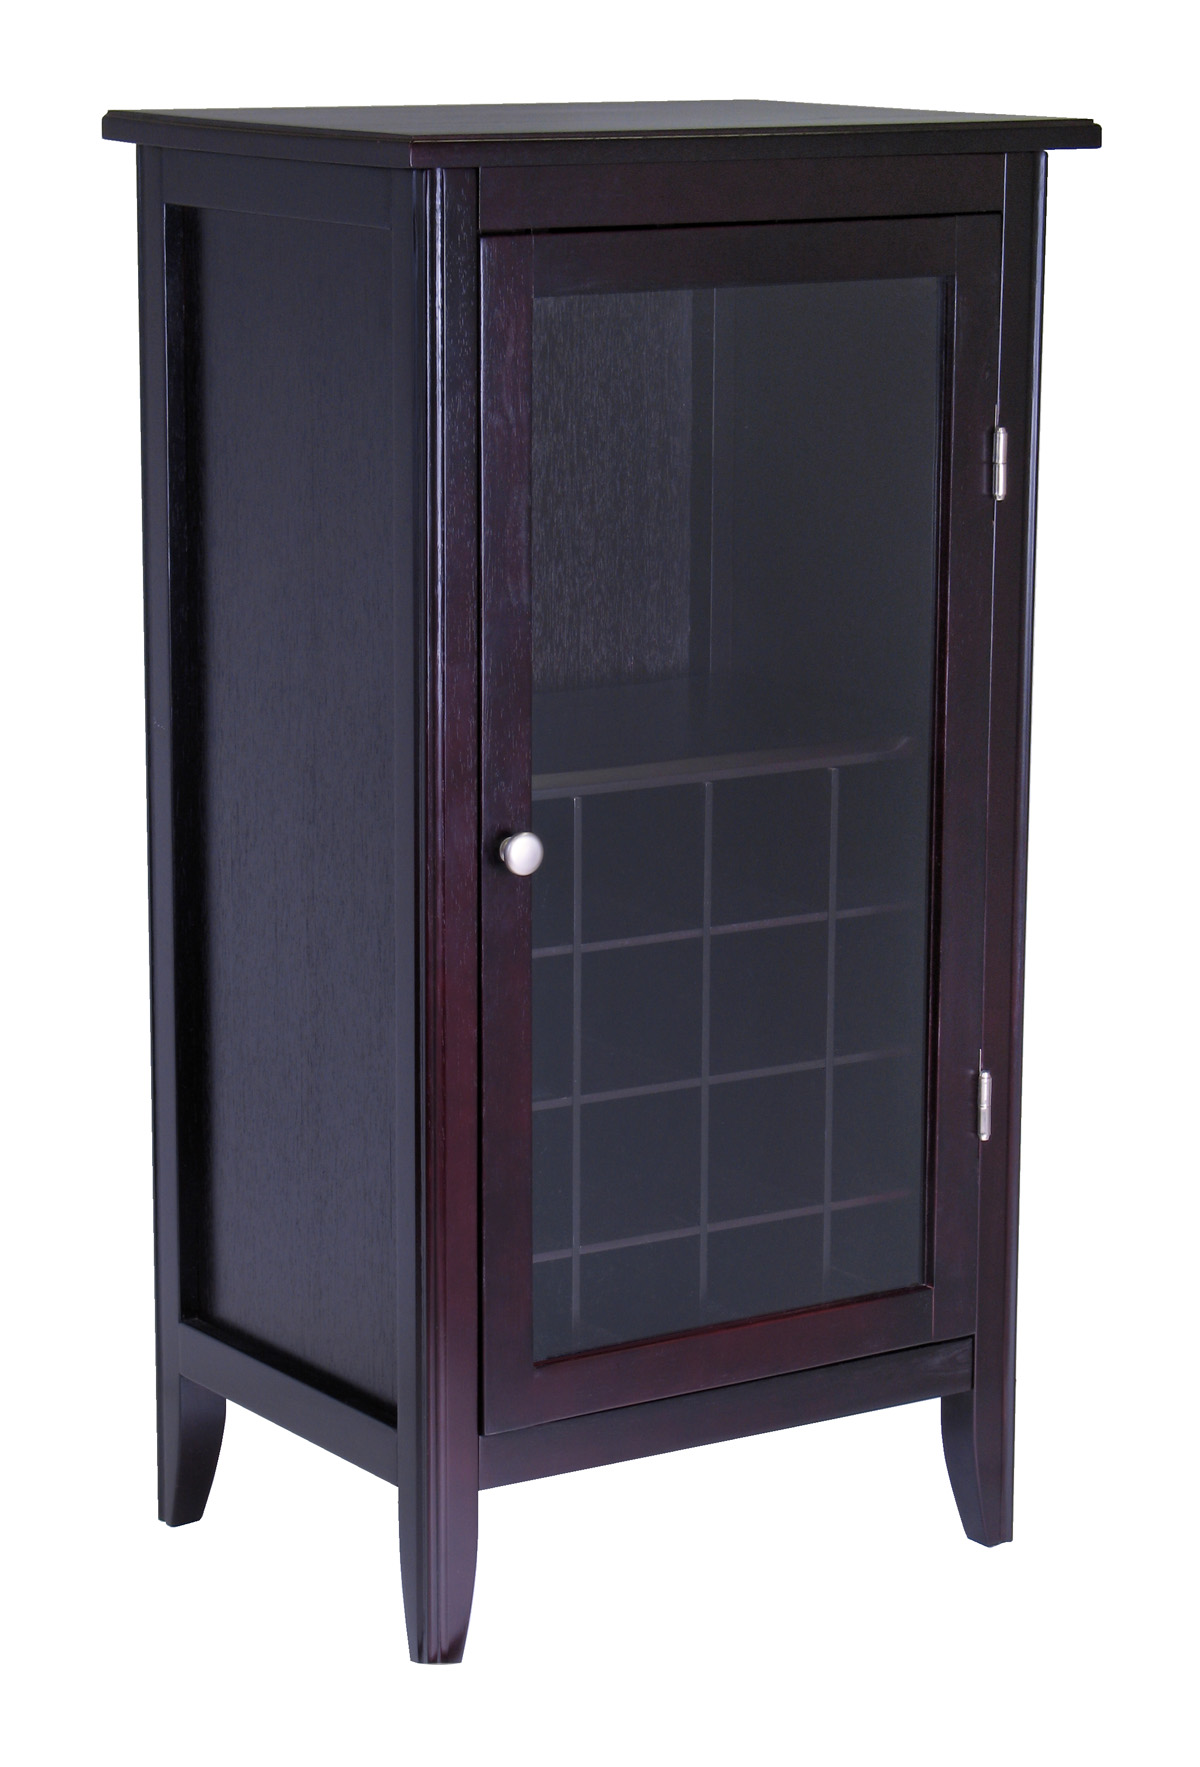 Winsome ryan wine cabinet 16 bottle one door glass rack for 1 door cabinet